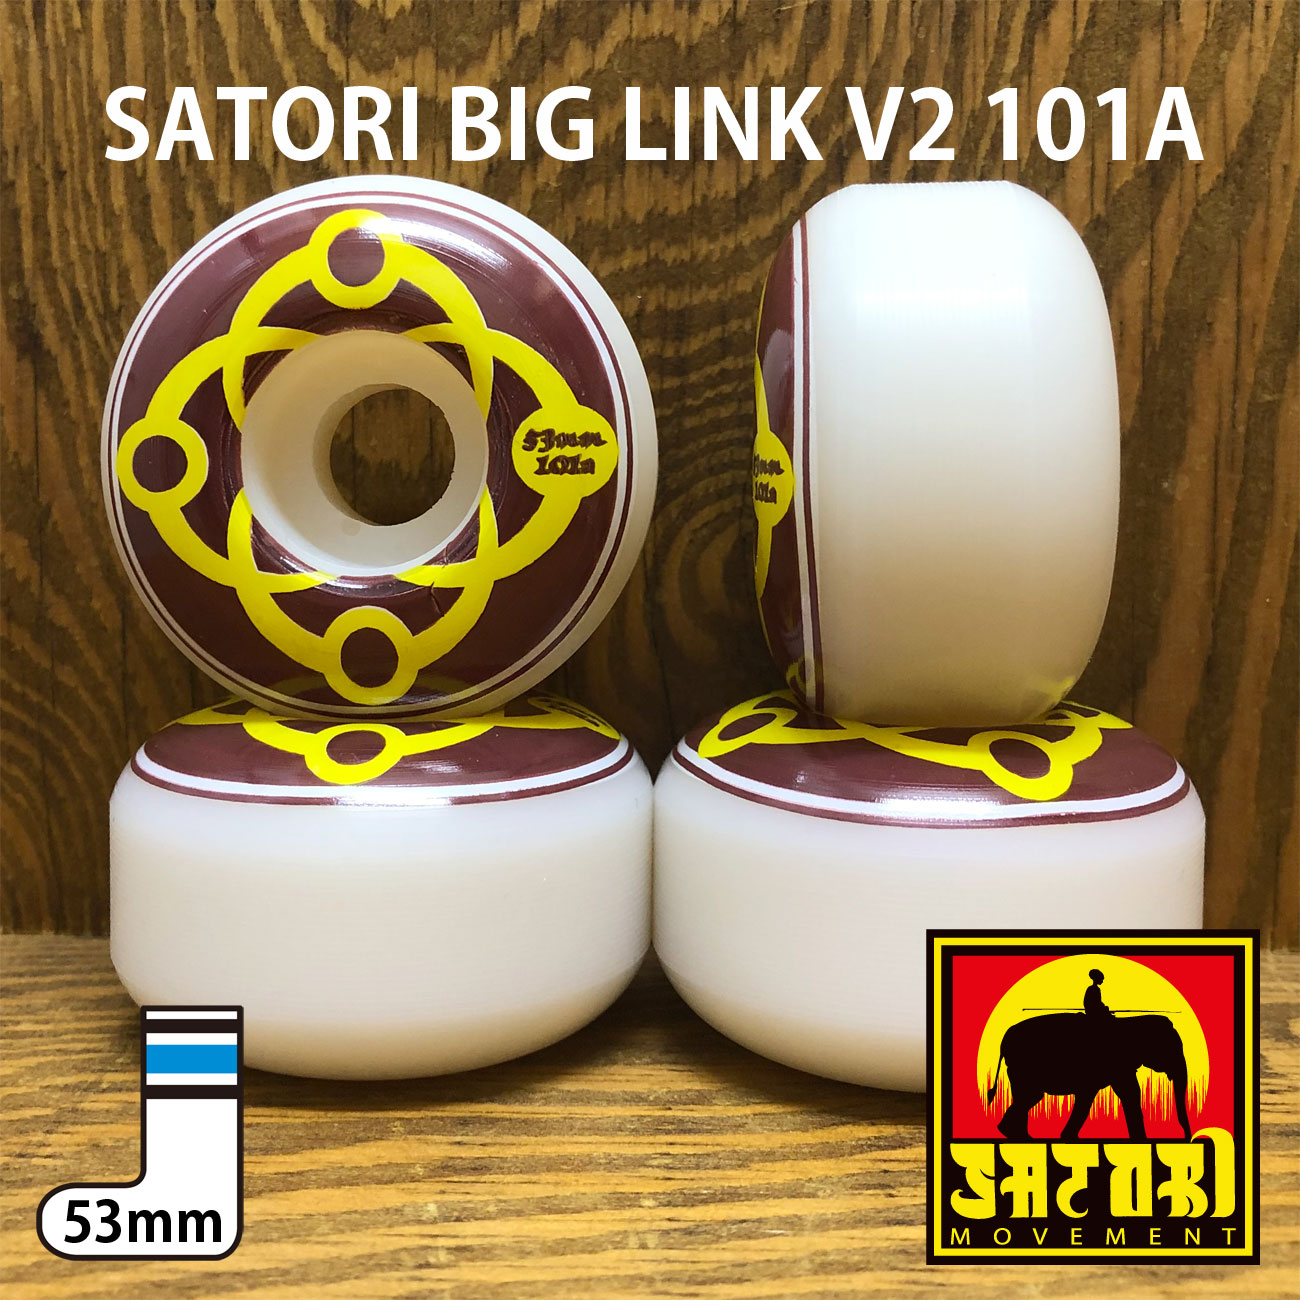 SATORI MOVEMENT BIG LINK V2 101A 53mm